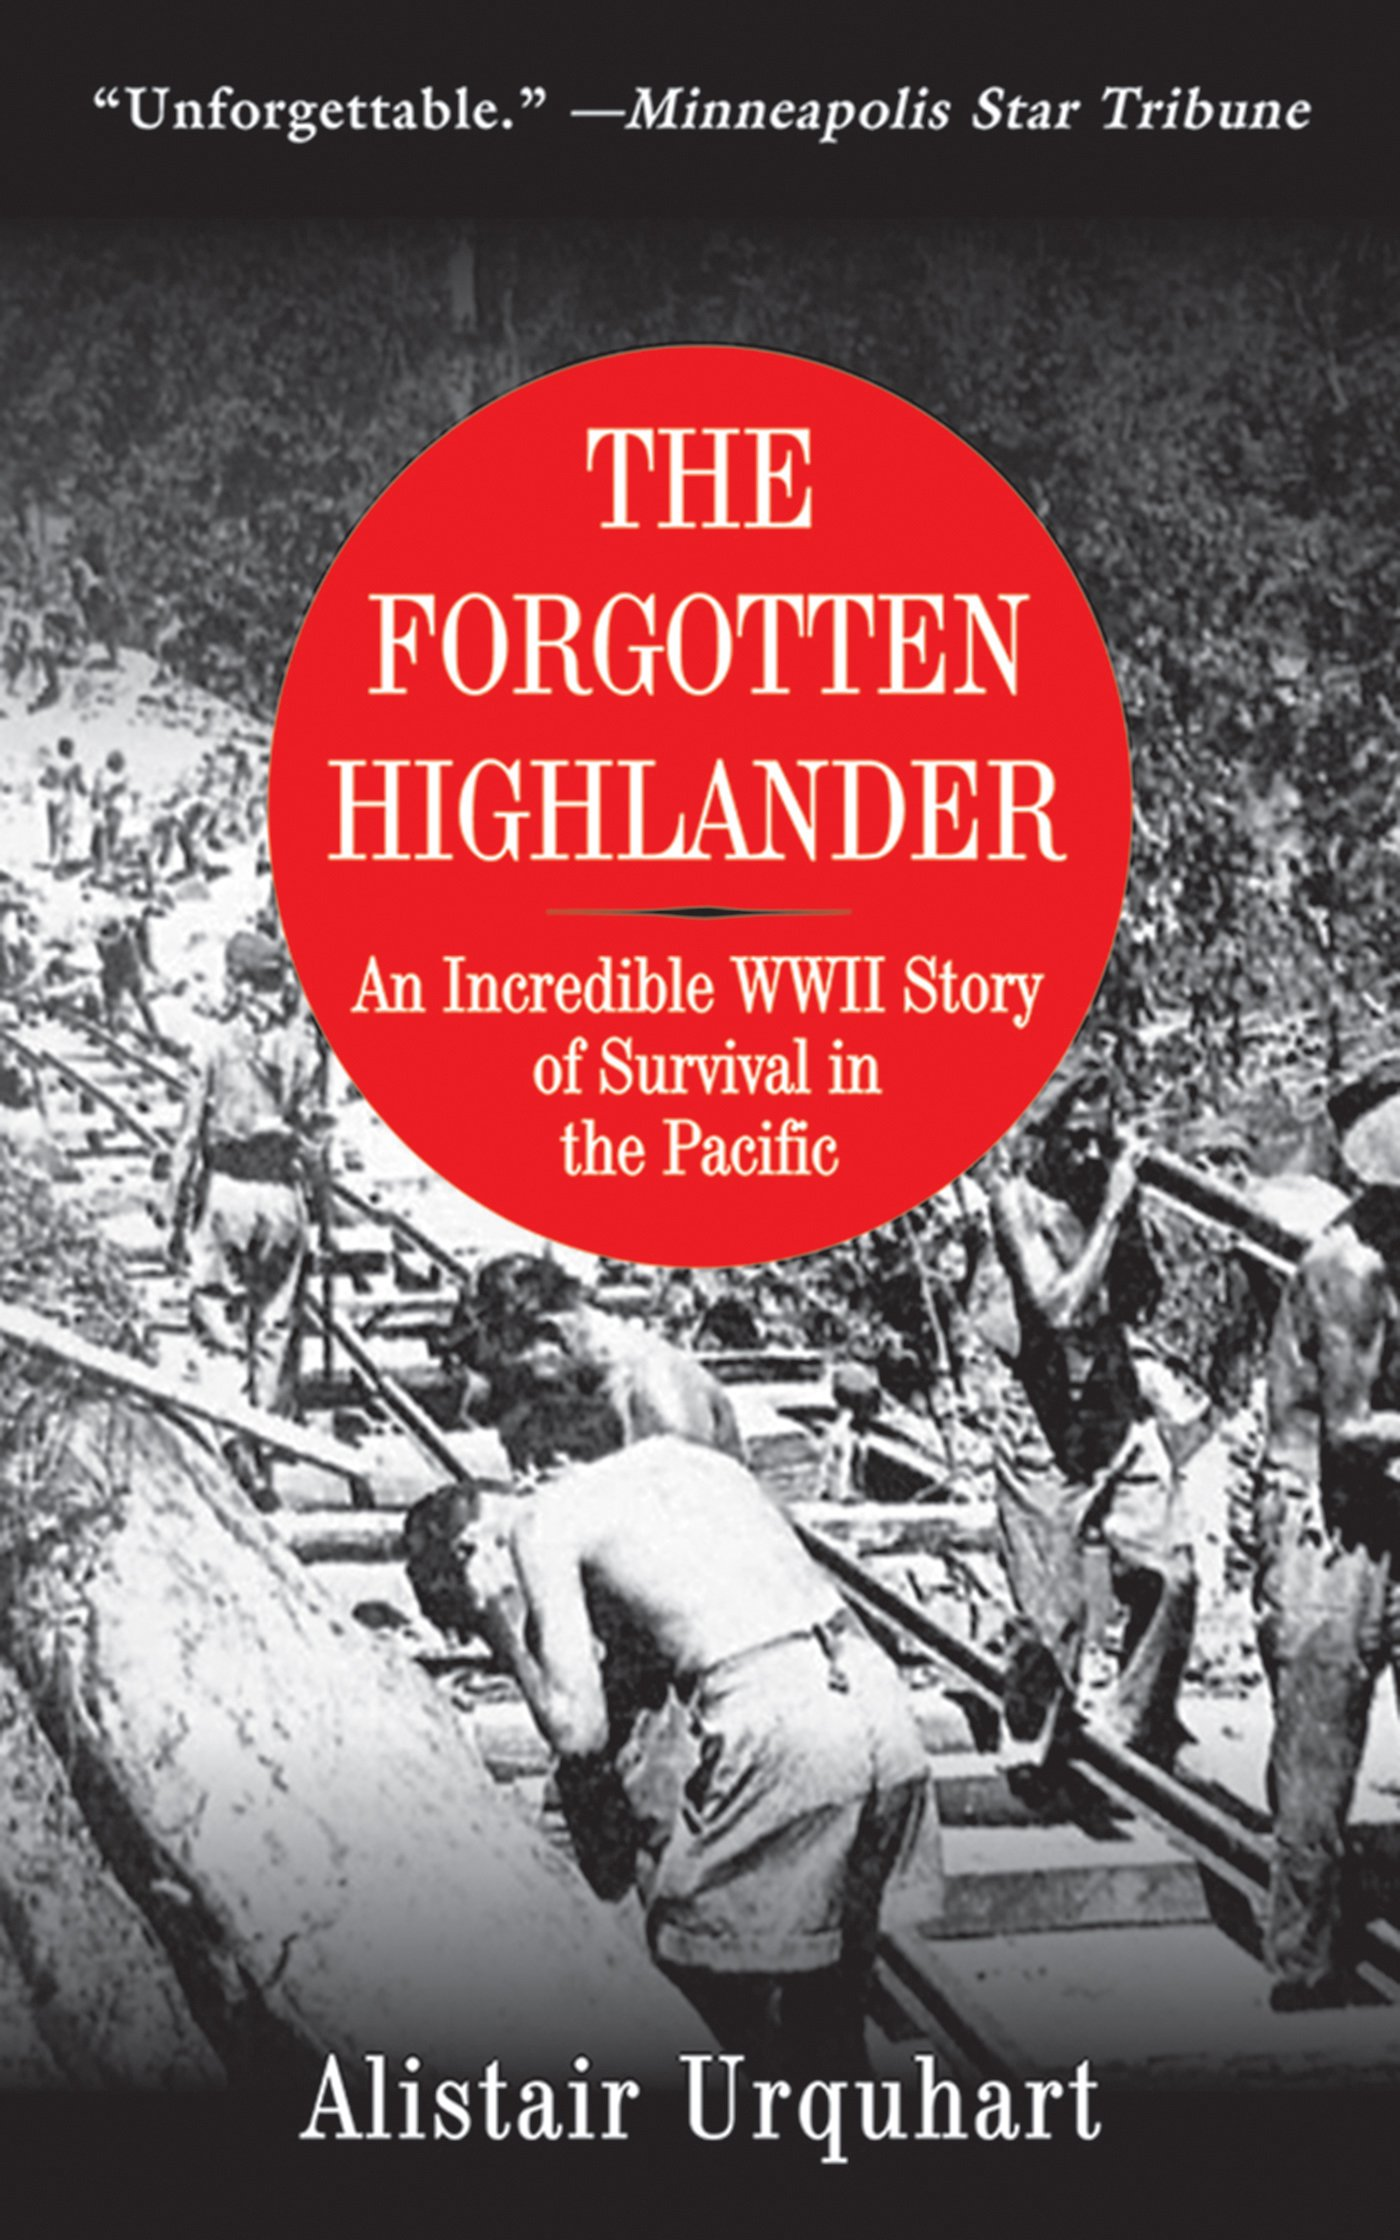 the-forgotten-highlander-an-incredible-wwii-story-of-survival-in-the-pacific